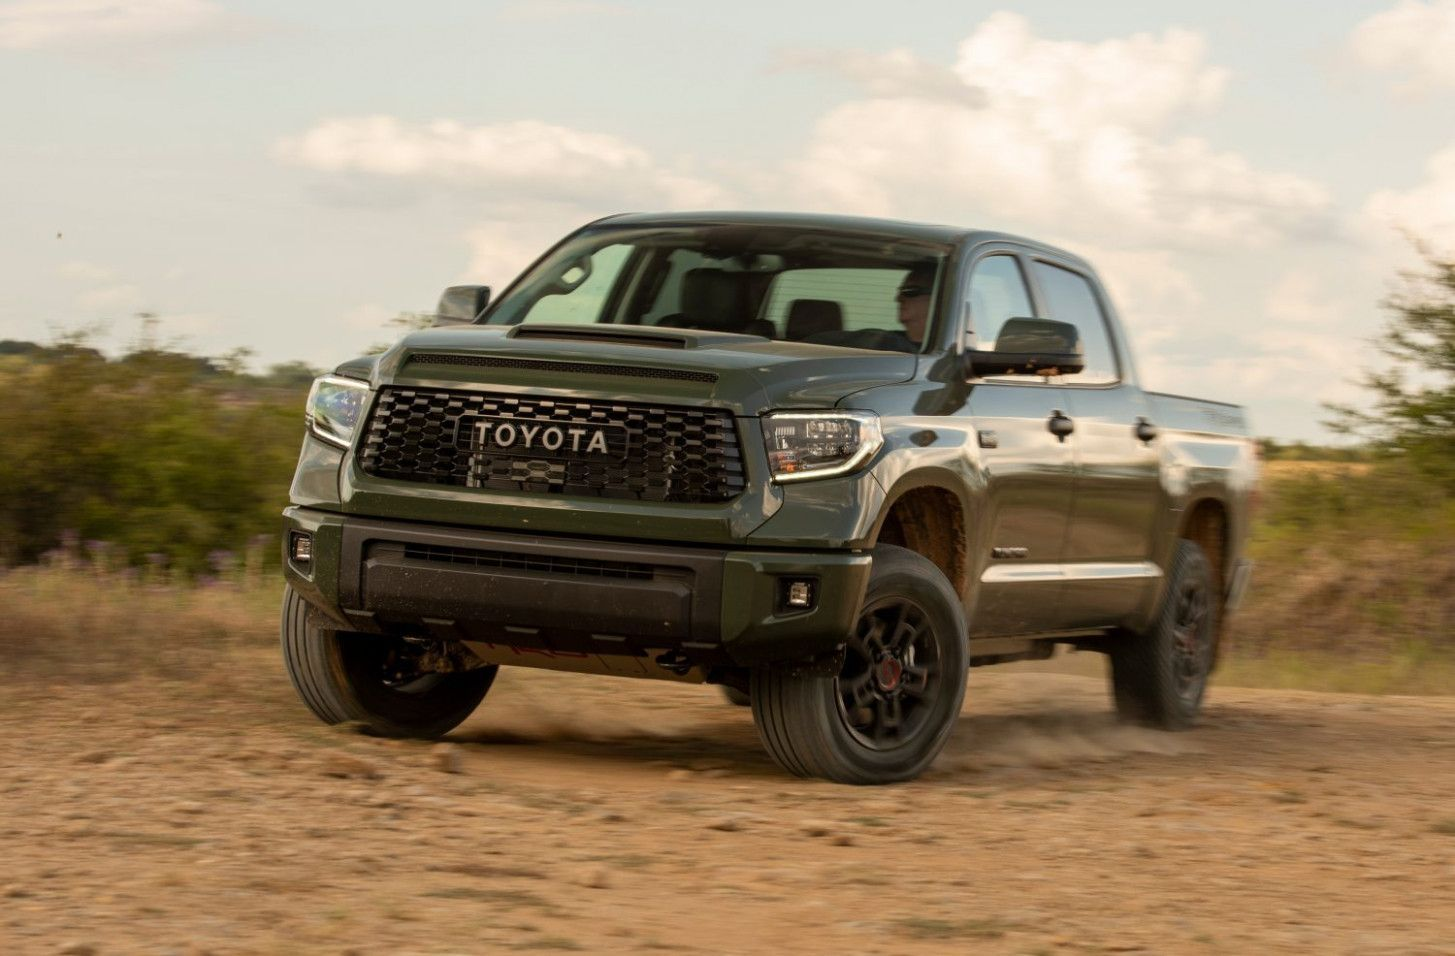 Scooters Truck Accessories Toyota Tundra Truck Accessories Toyota Tundra 2004 Toyota Tundra Toyota In 2020 New Toyota Tundra Toyota Tundra Toyota Tundra Trd